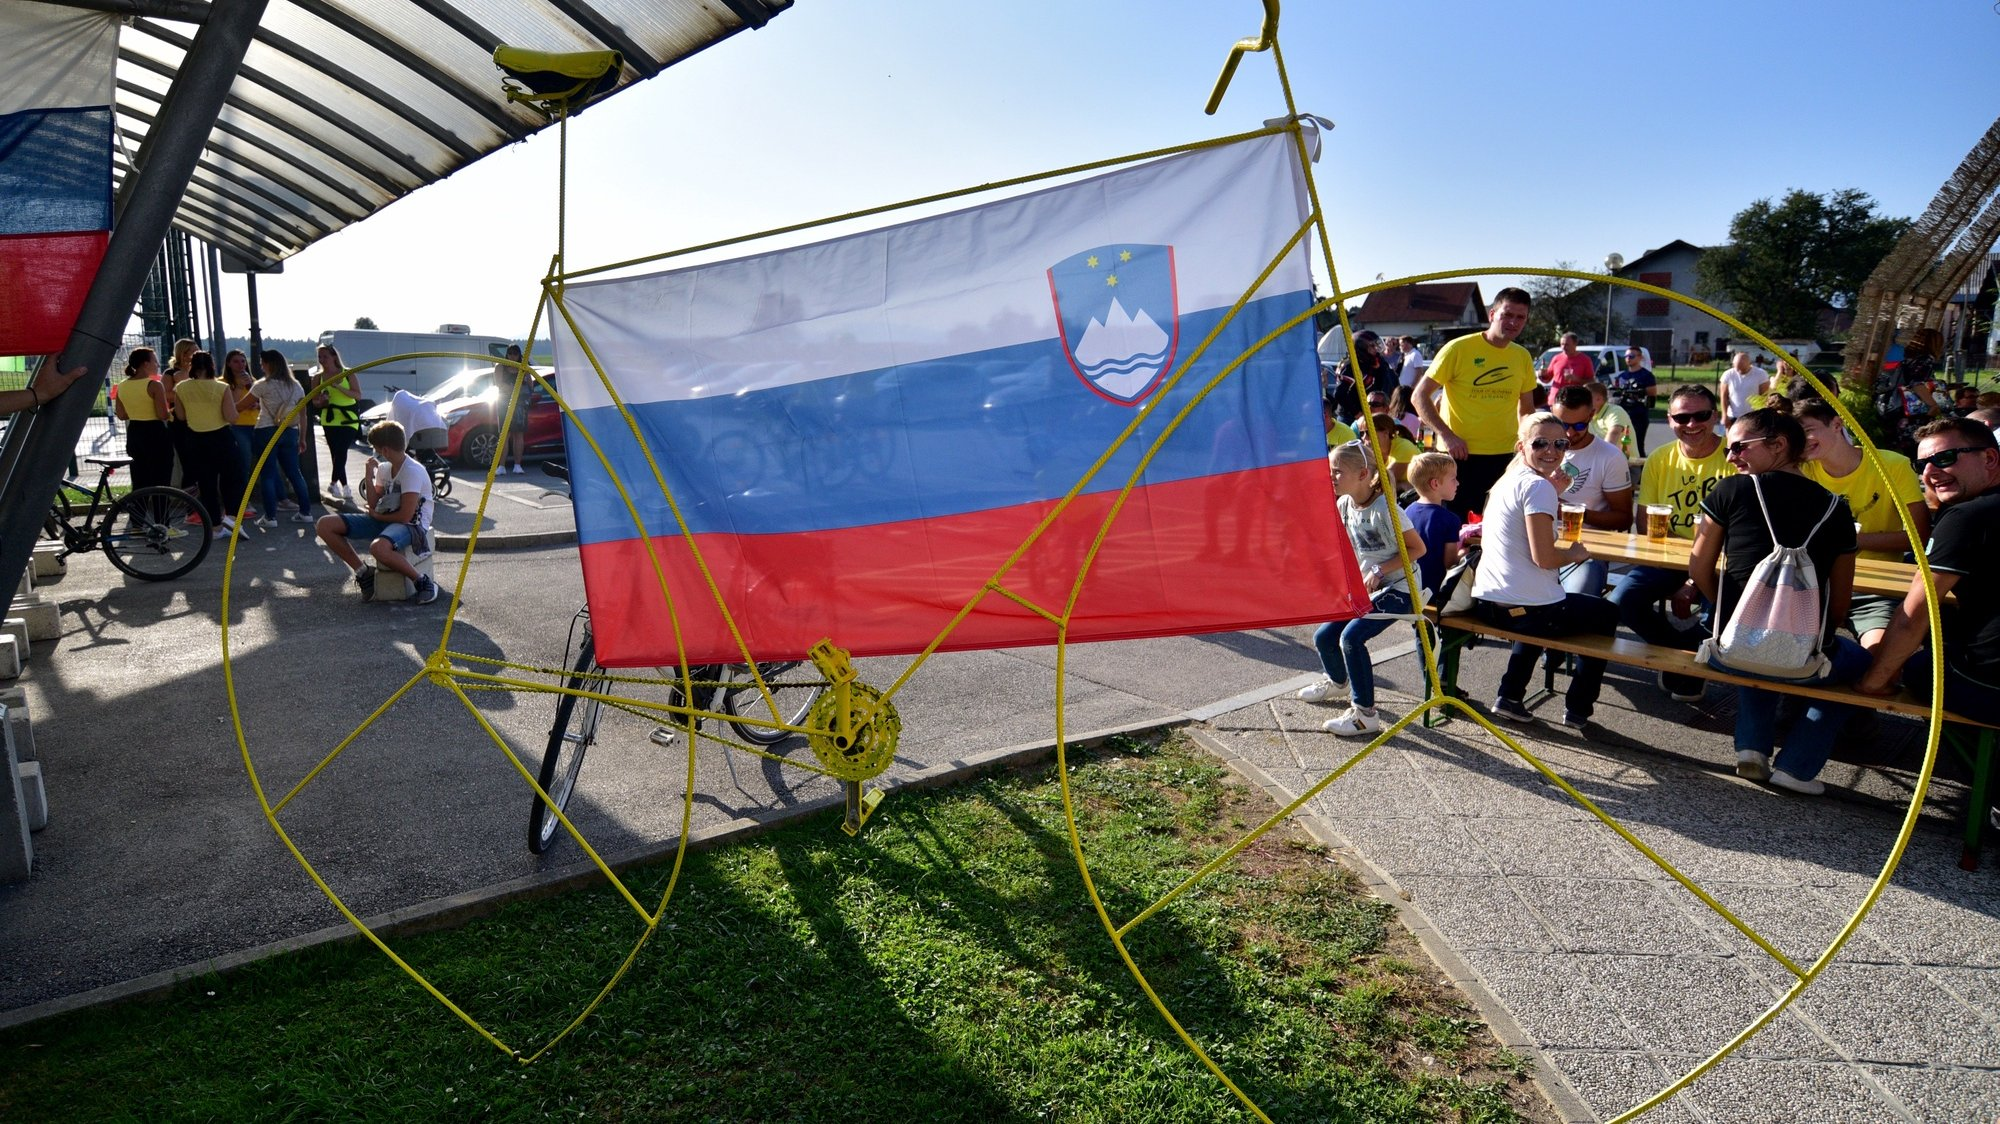 epa08684244 A yellow bike with the Slovenian flag as locals watch the broadcast of the 21st and last stage of the 2020 Tour de France cycling race, in Komenda, Slovenia, 20 September 2020. The village is the home town of cyclist Tadej Pogacar who wears the overall leader's yellow jersey before the last stage.  EPA/IGOR KUPLJENIK